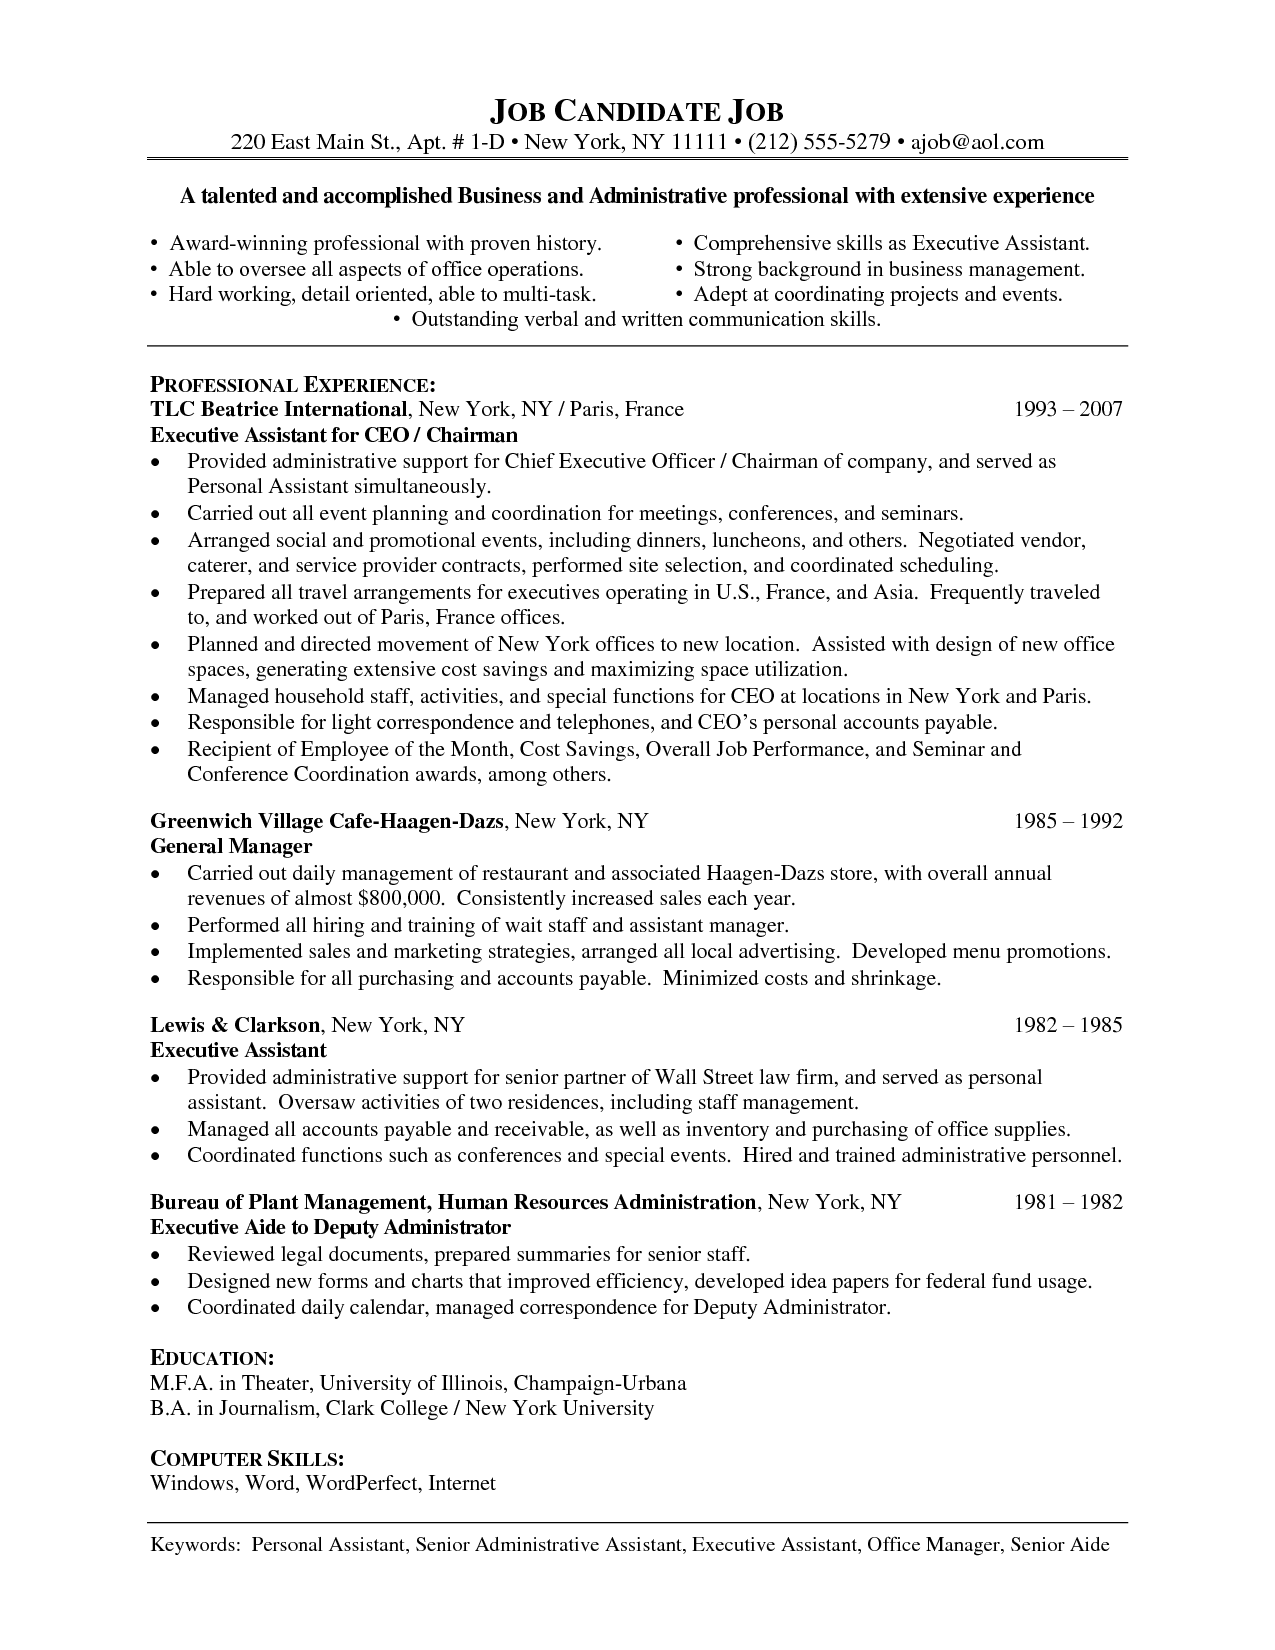 Purchasing Assistant Resume Functional Resume Template For Administrative  Assistant Word S .  Administrative Assistant Job Objective